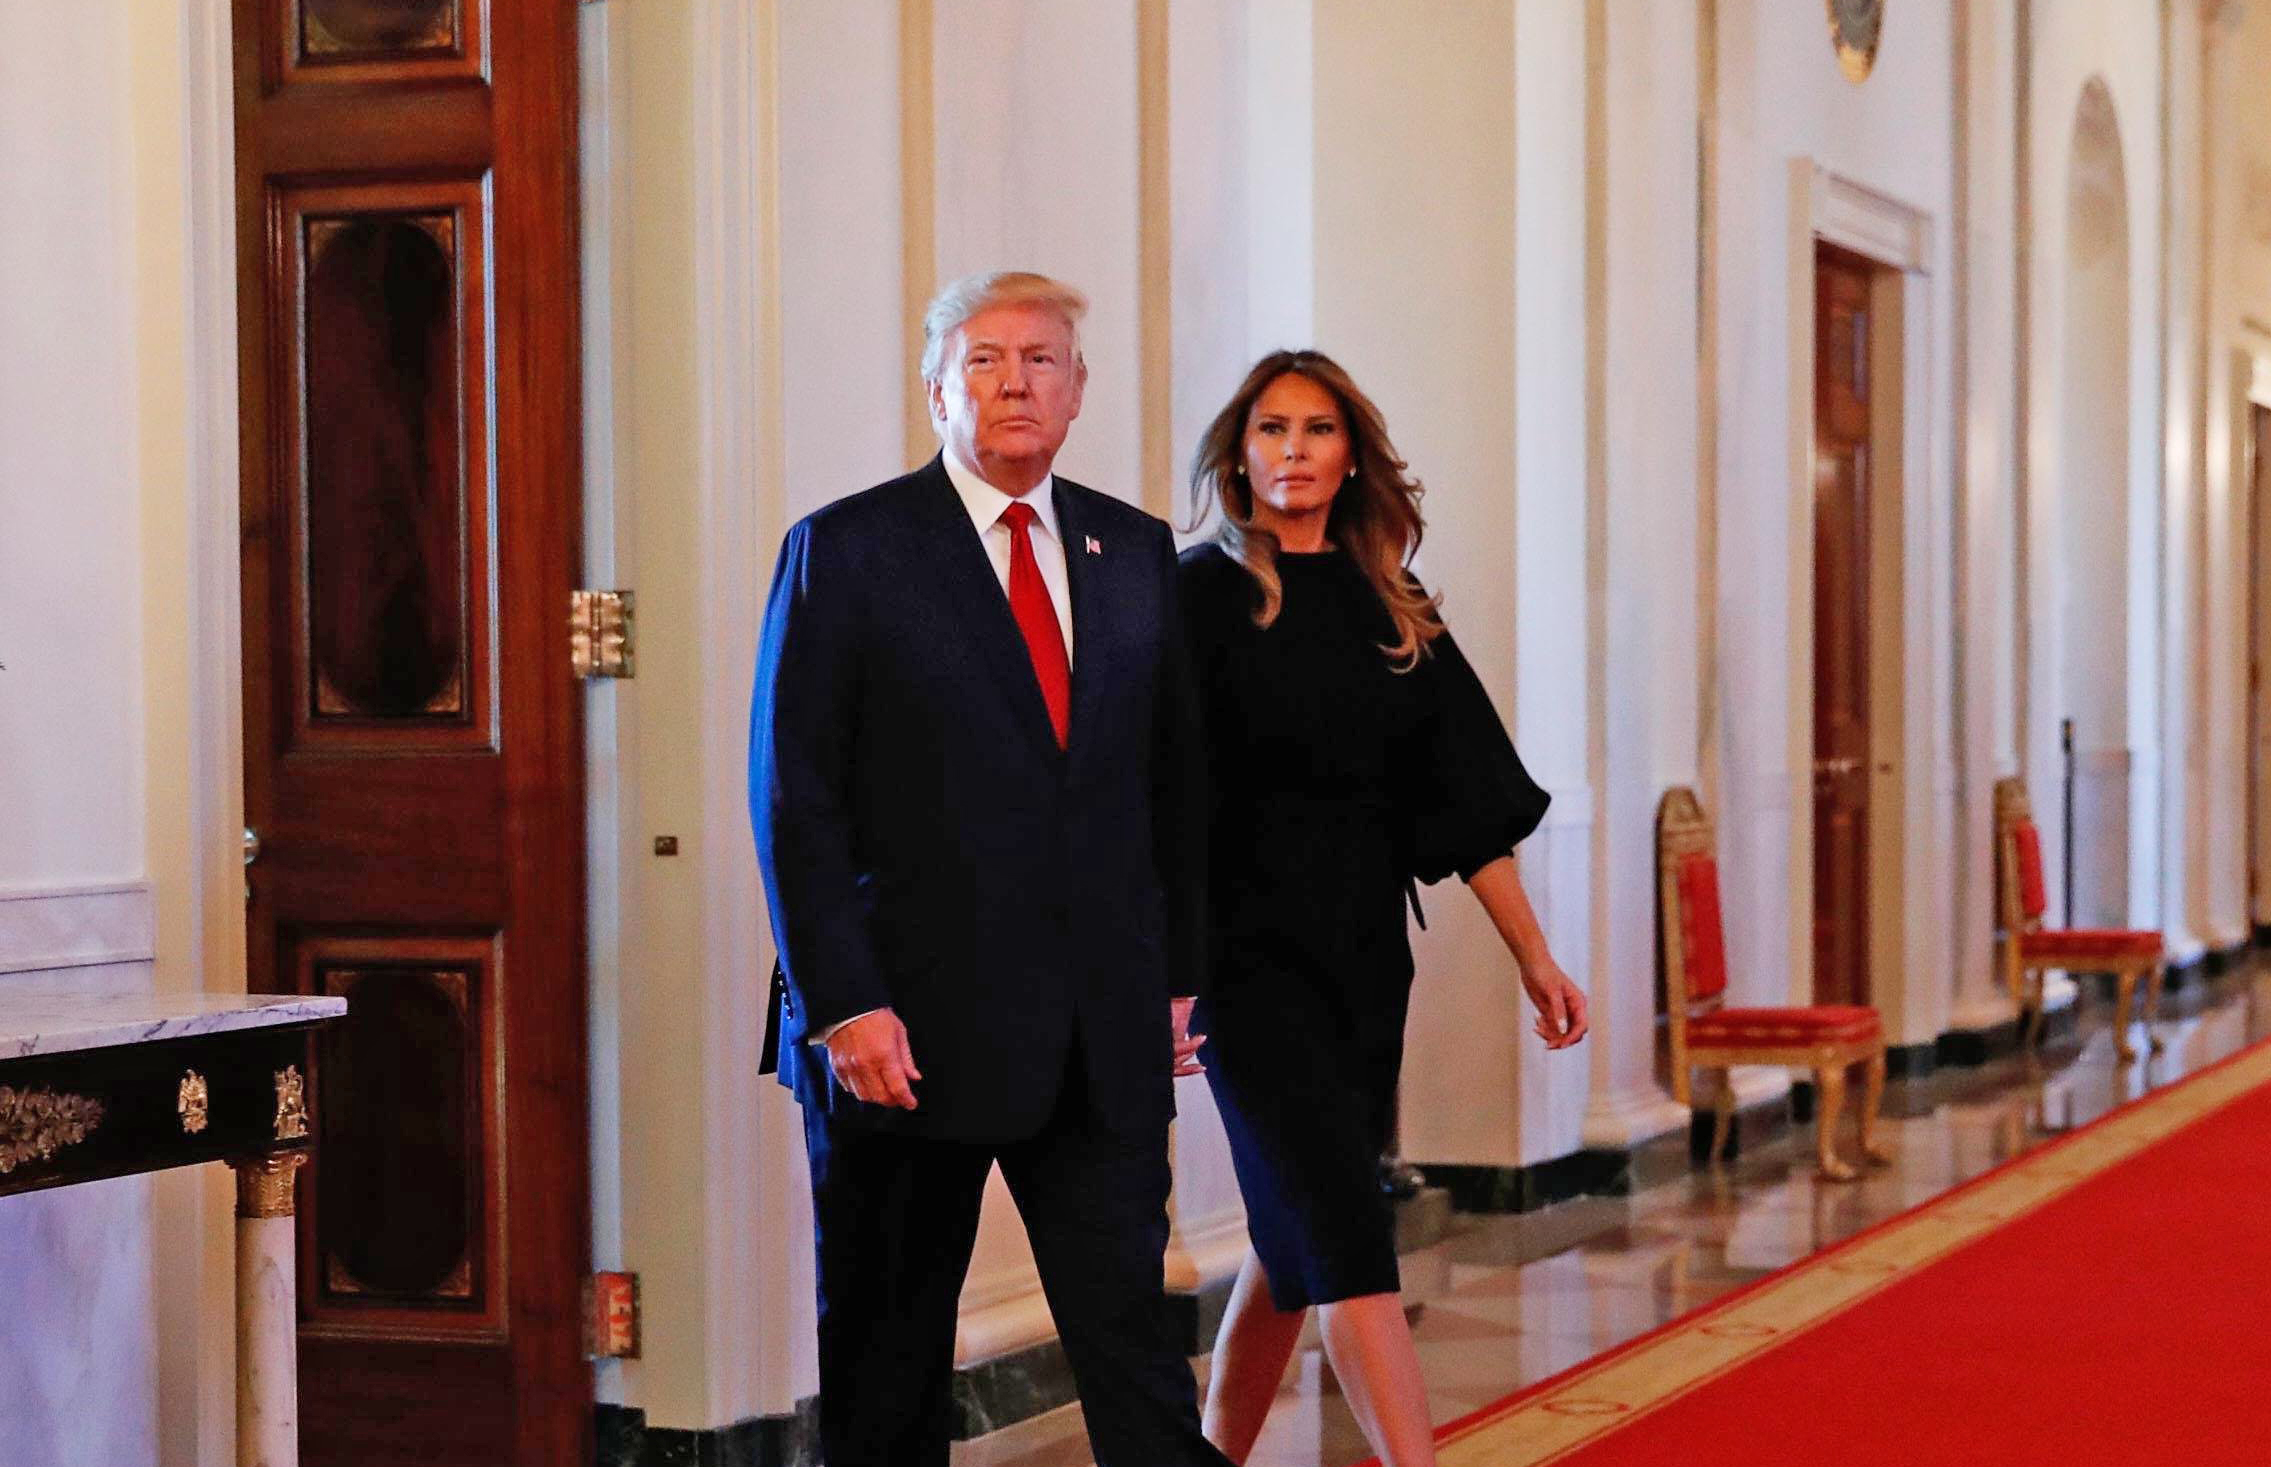 Image: U.S. President Donald Trump arrives with First Lady Melania Trump before he speaks about administration plans to combat the nation's opioid crisis in the East Room of the White House in Washington